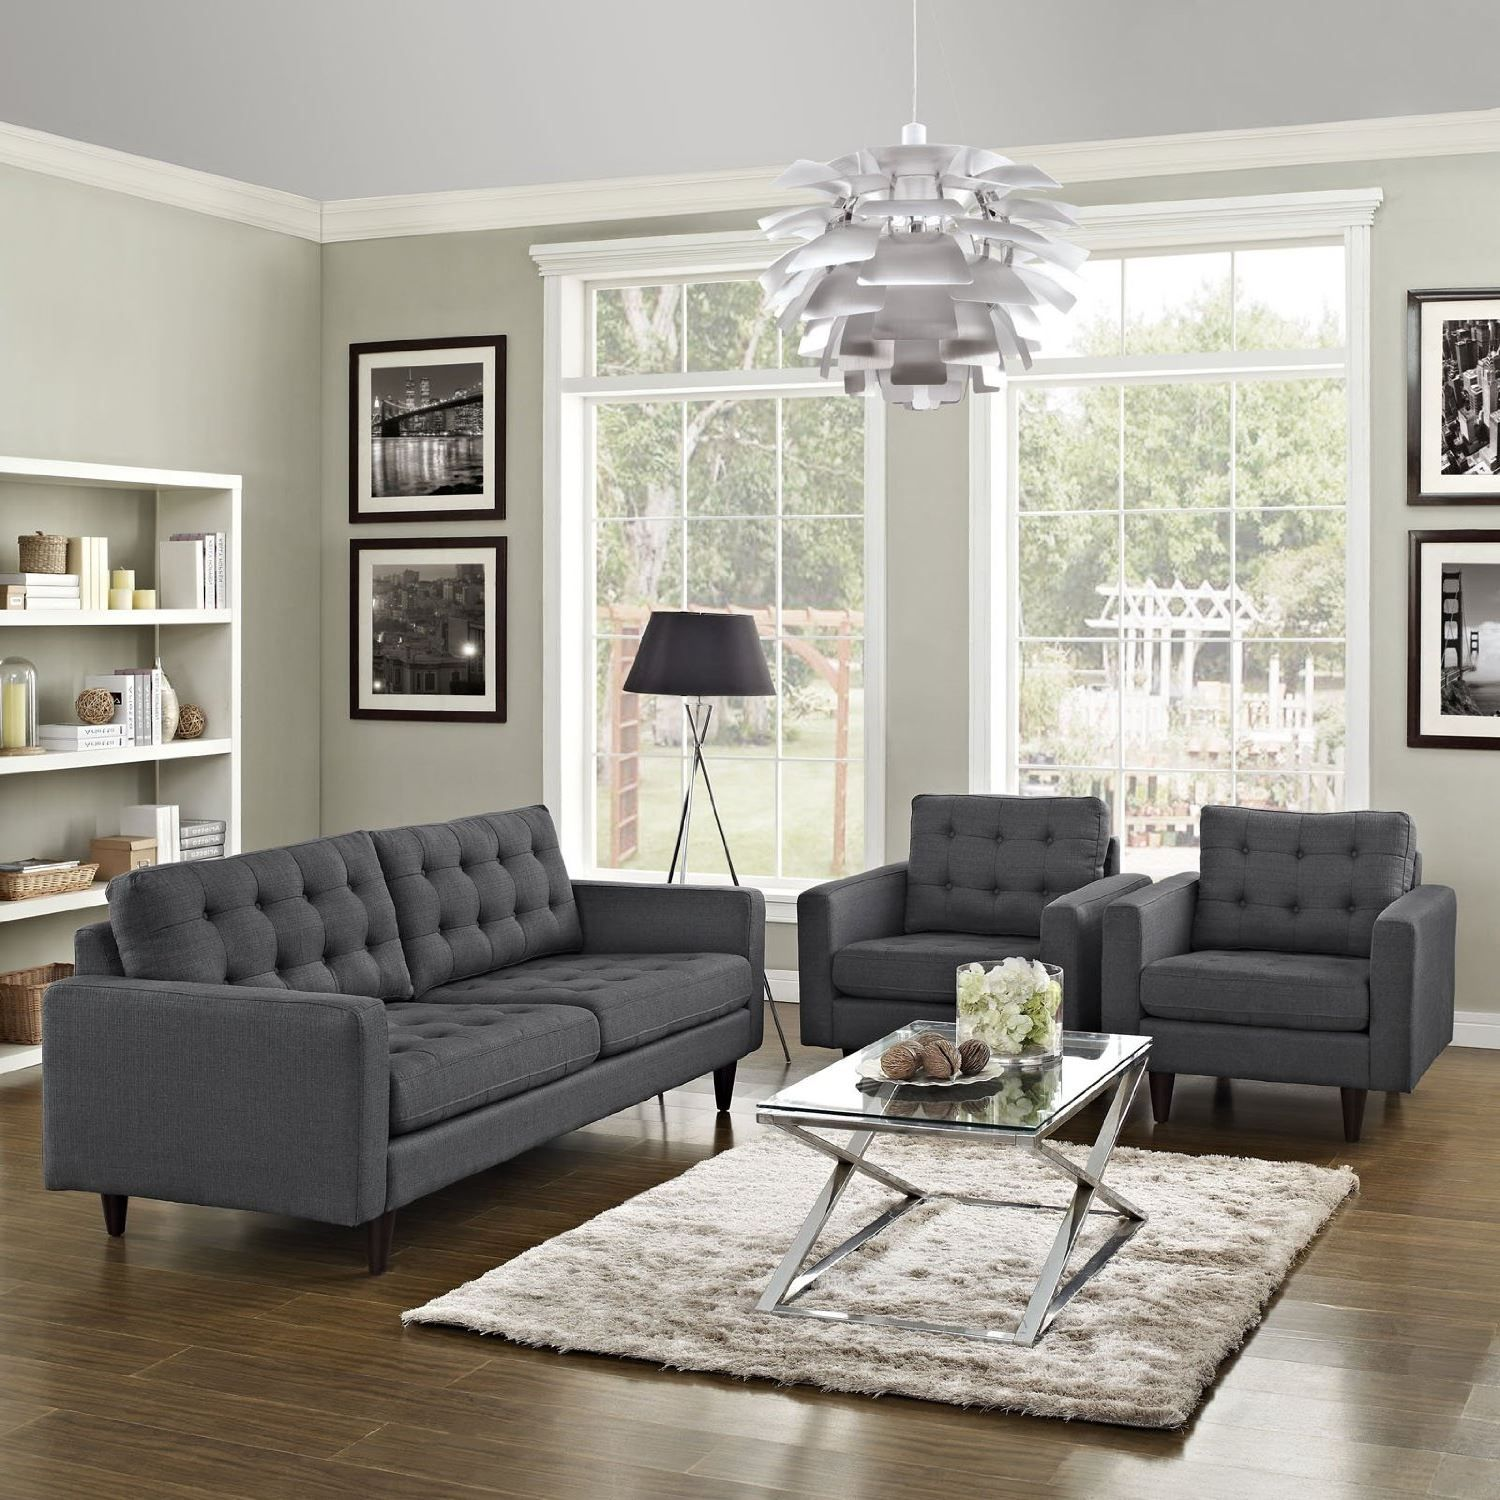 2018 Hottest And Trendiest Gray Leather Sofas For Fashionable